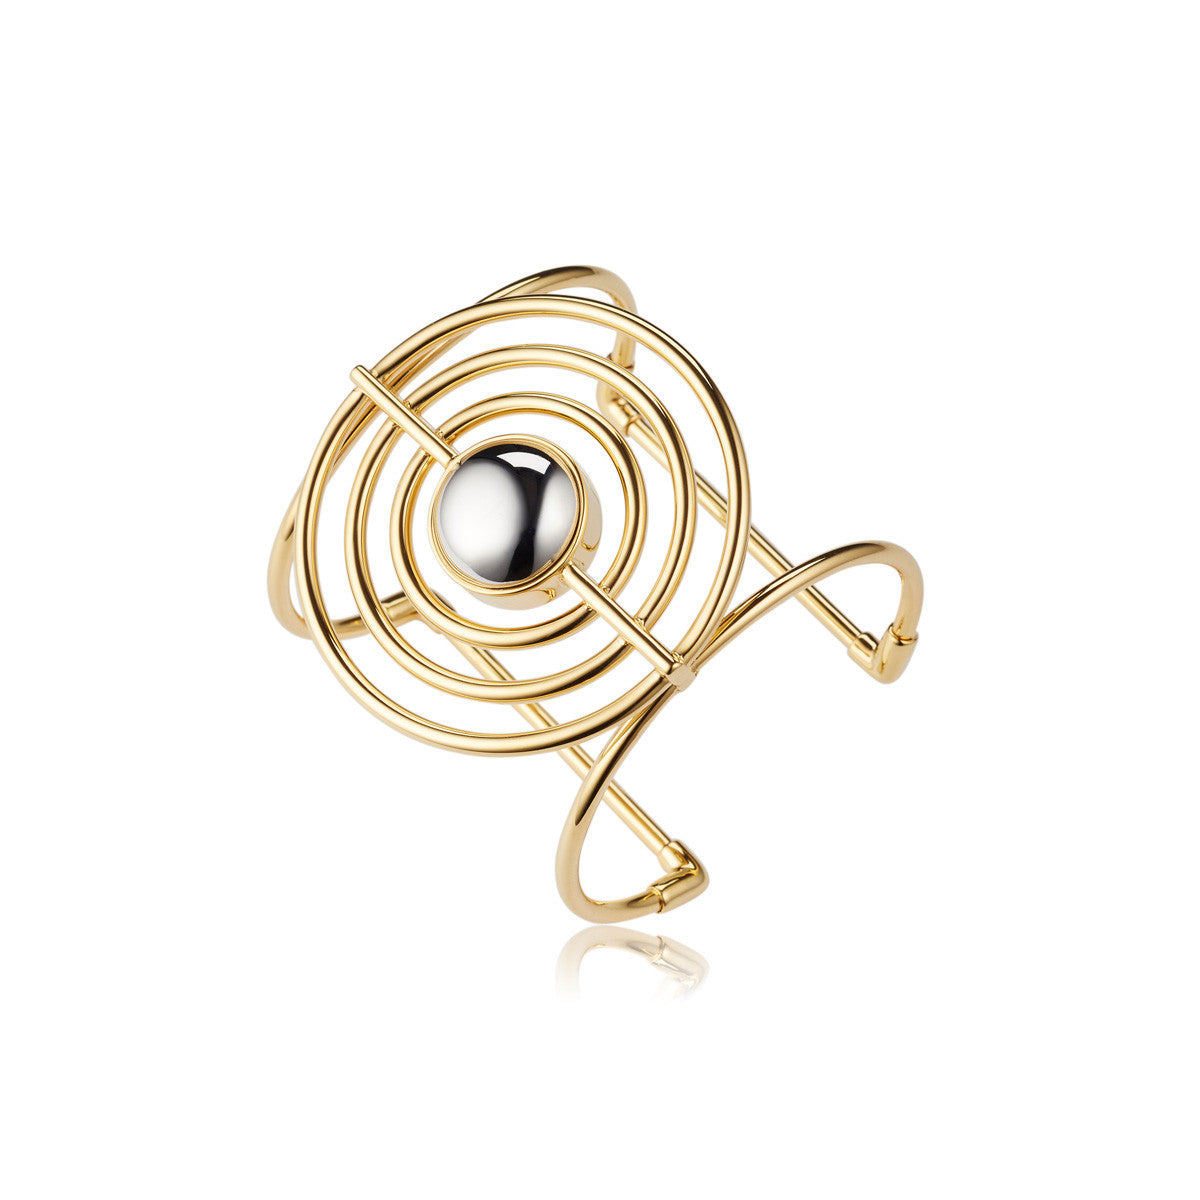 Solid brass, the Splendidus Saturn cuff bangle features contrasting 18K gold and rhodium plating - side